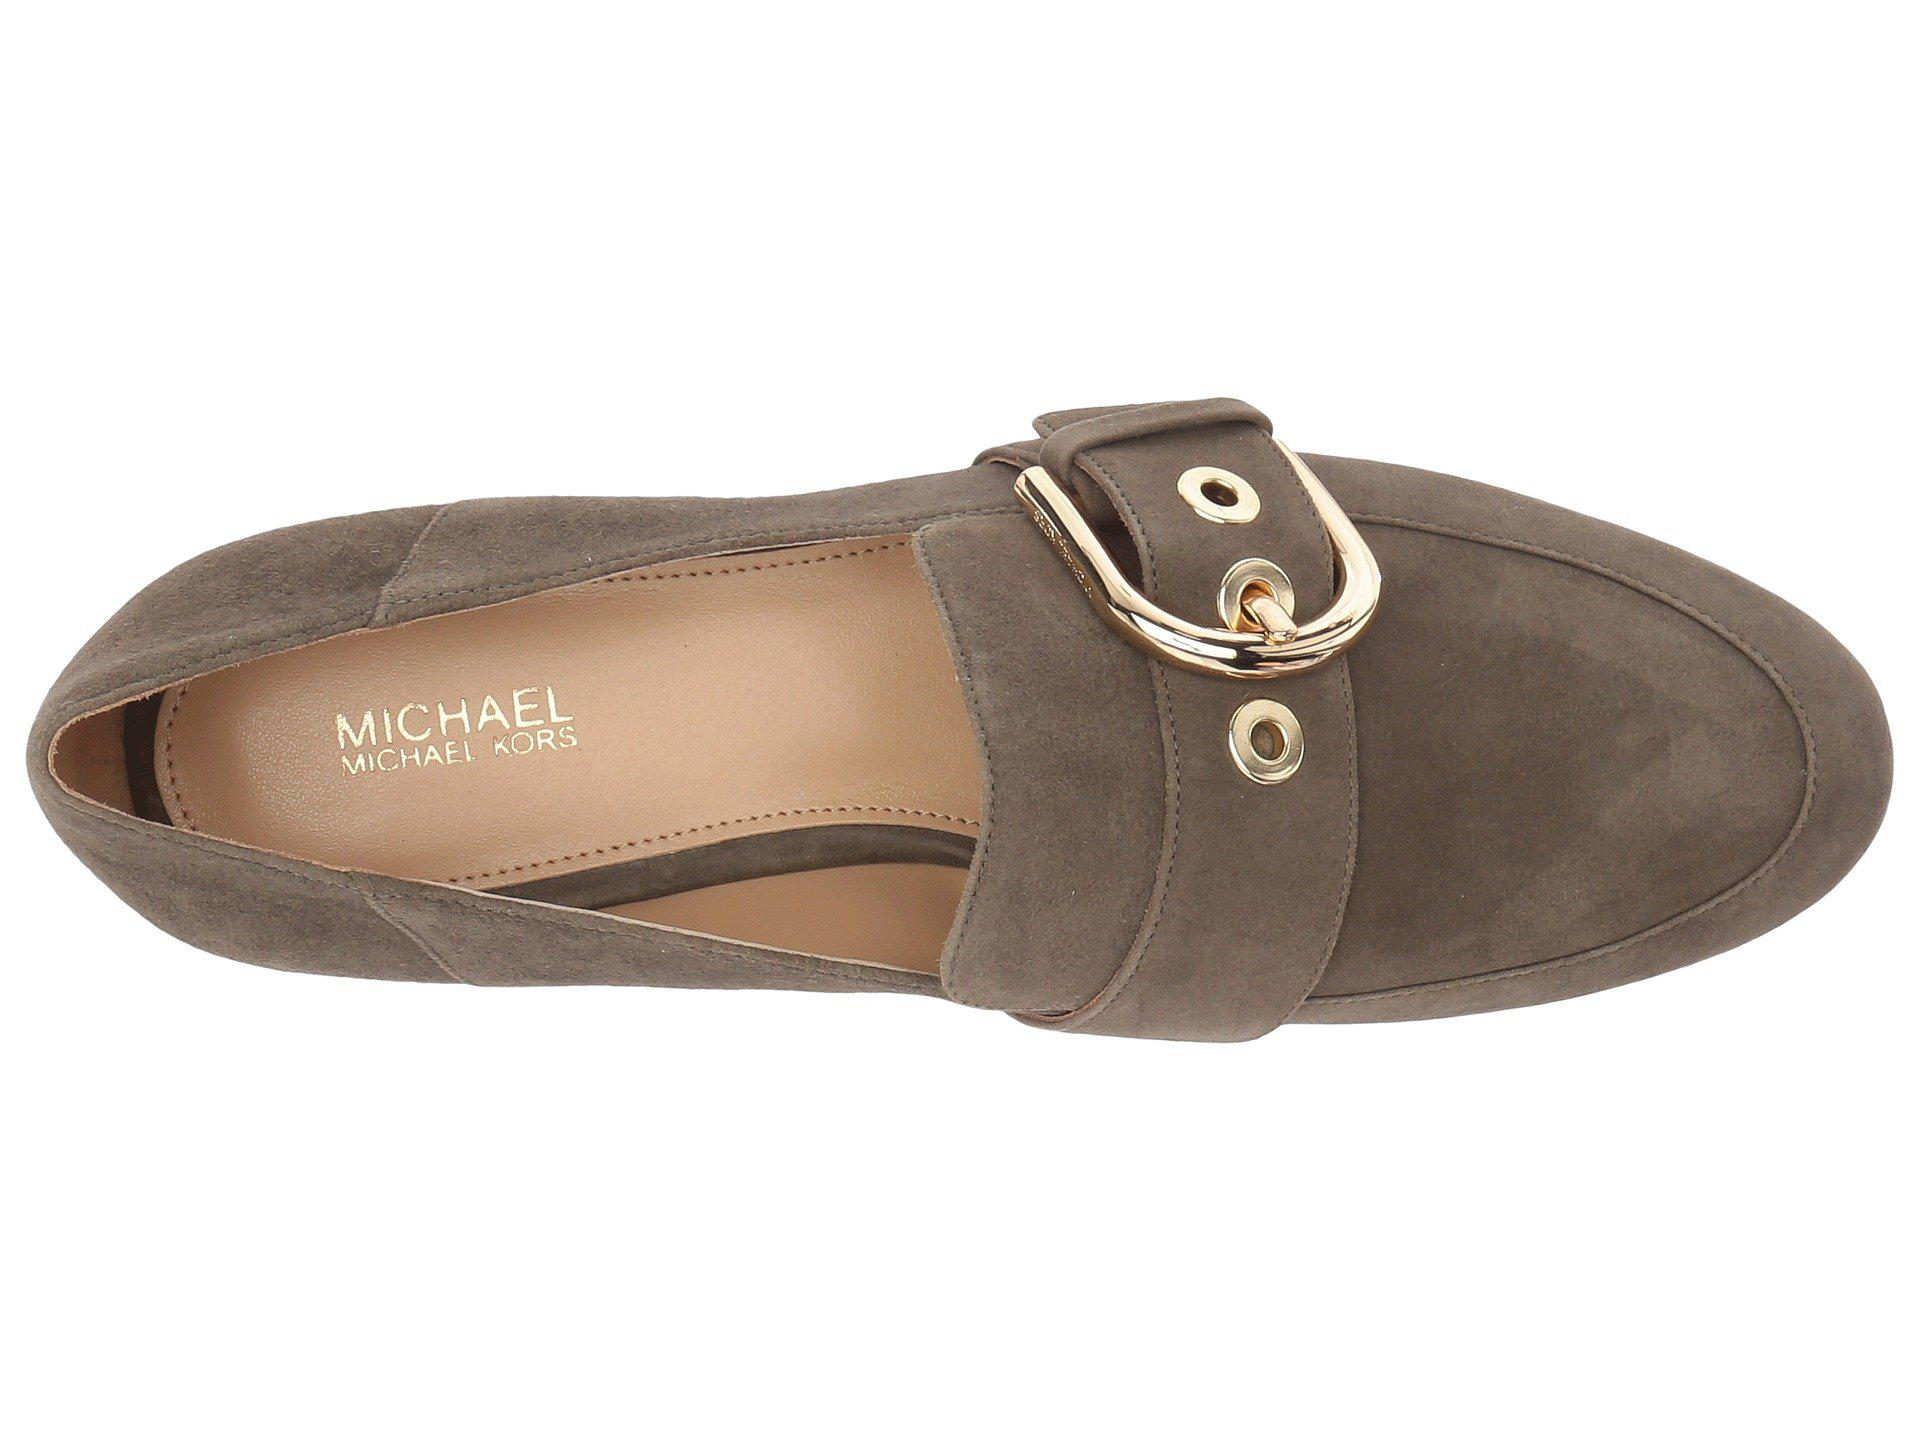 0f64f28cd94 Gallery. Previously sold at  6PM · Women s Charlotte Olympia Cat Women s Michael  Kors ...